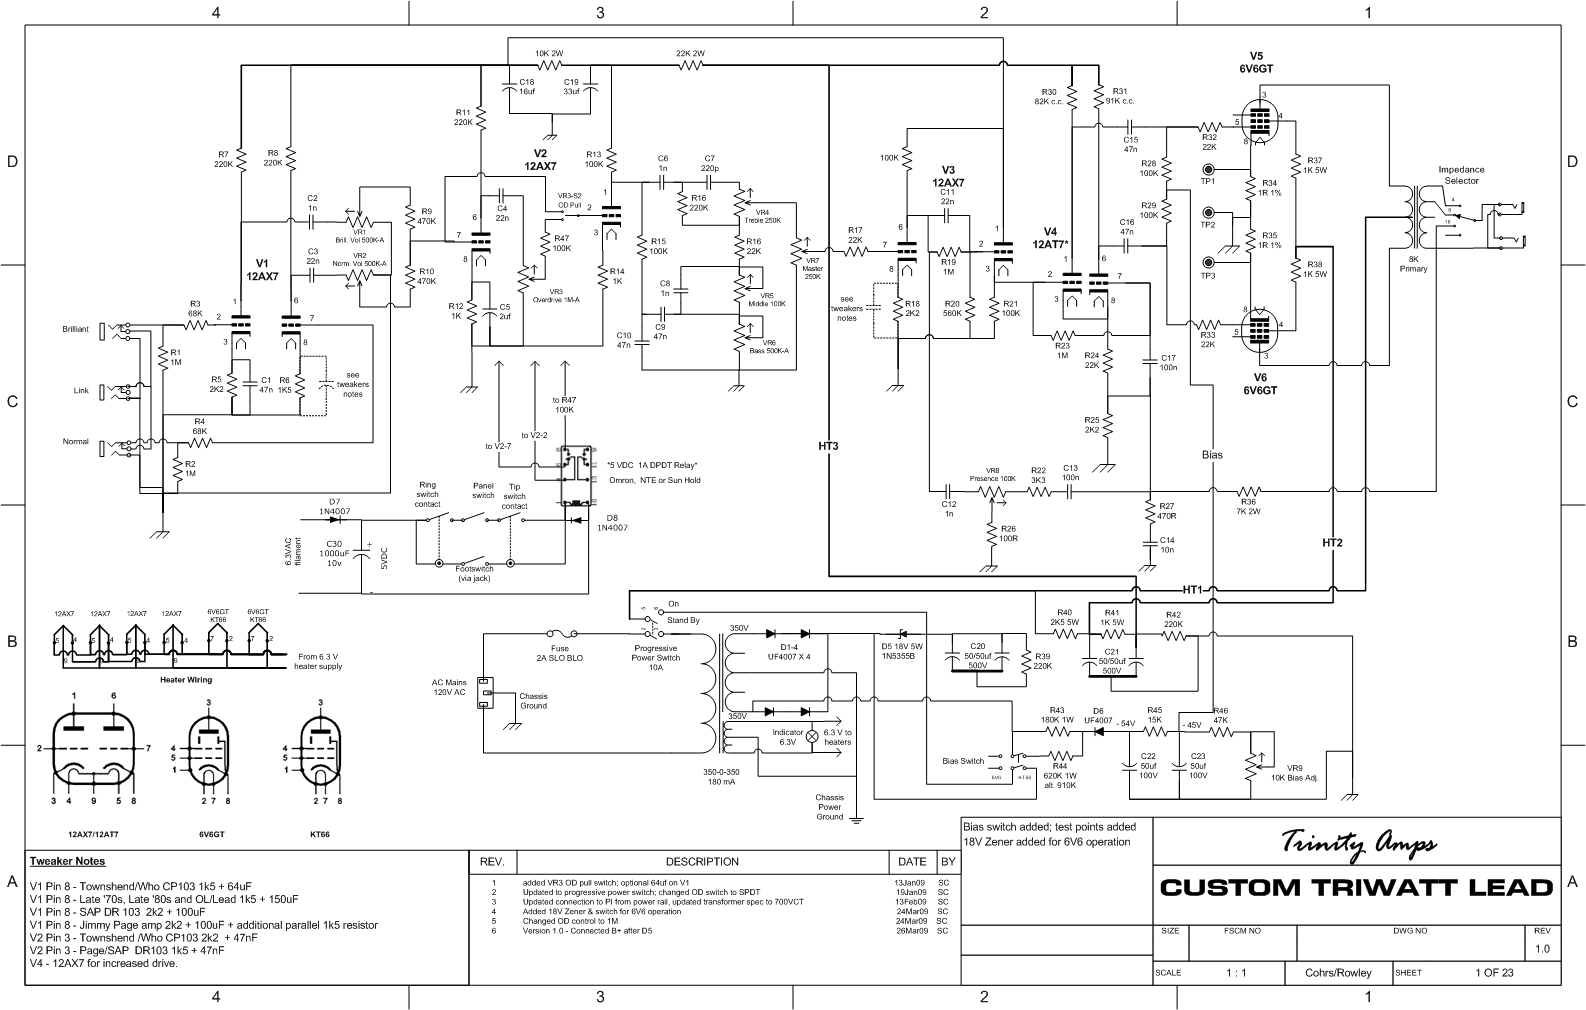 Guitar Amp Board • View topic - First moments with the Hiwatt on ebow schematic, pignose schematic, bbe schematic, block diagram, guyatone schematic, orange dark terror schematic, reeves amp schematic, soldano schematic, multivox schematic, peavey schematic, mxr schematic, one-line diagram, bugera schematic, dod schematic, bogner schematic, inverter schematic, technical drawing, piping and instrumentation diagram, orange th30 schematic, circuit diagram, blackstar schematic, matamp schematic, functional flow block diagram, vox schematic, 5f1 schematic, mesa boogie schematic,